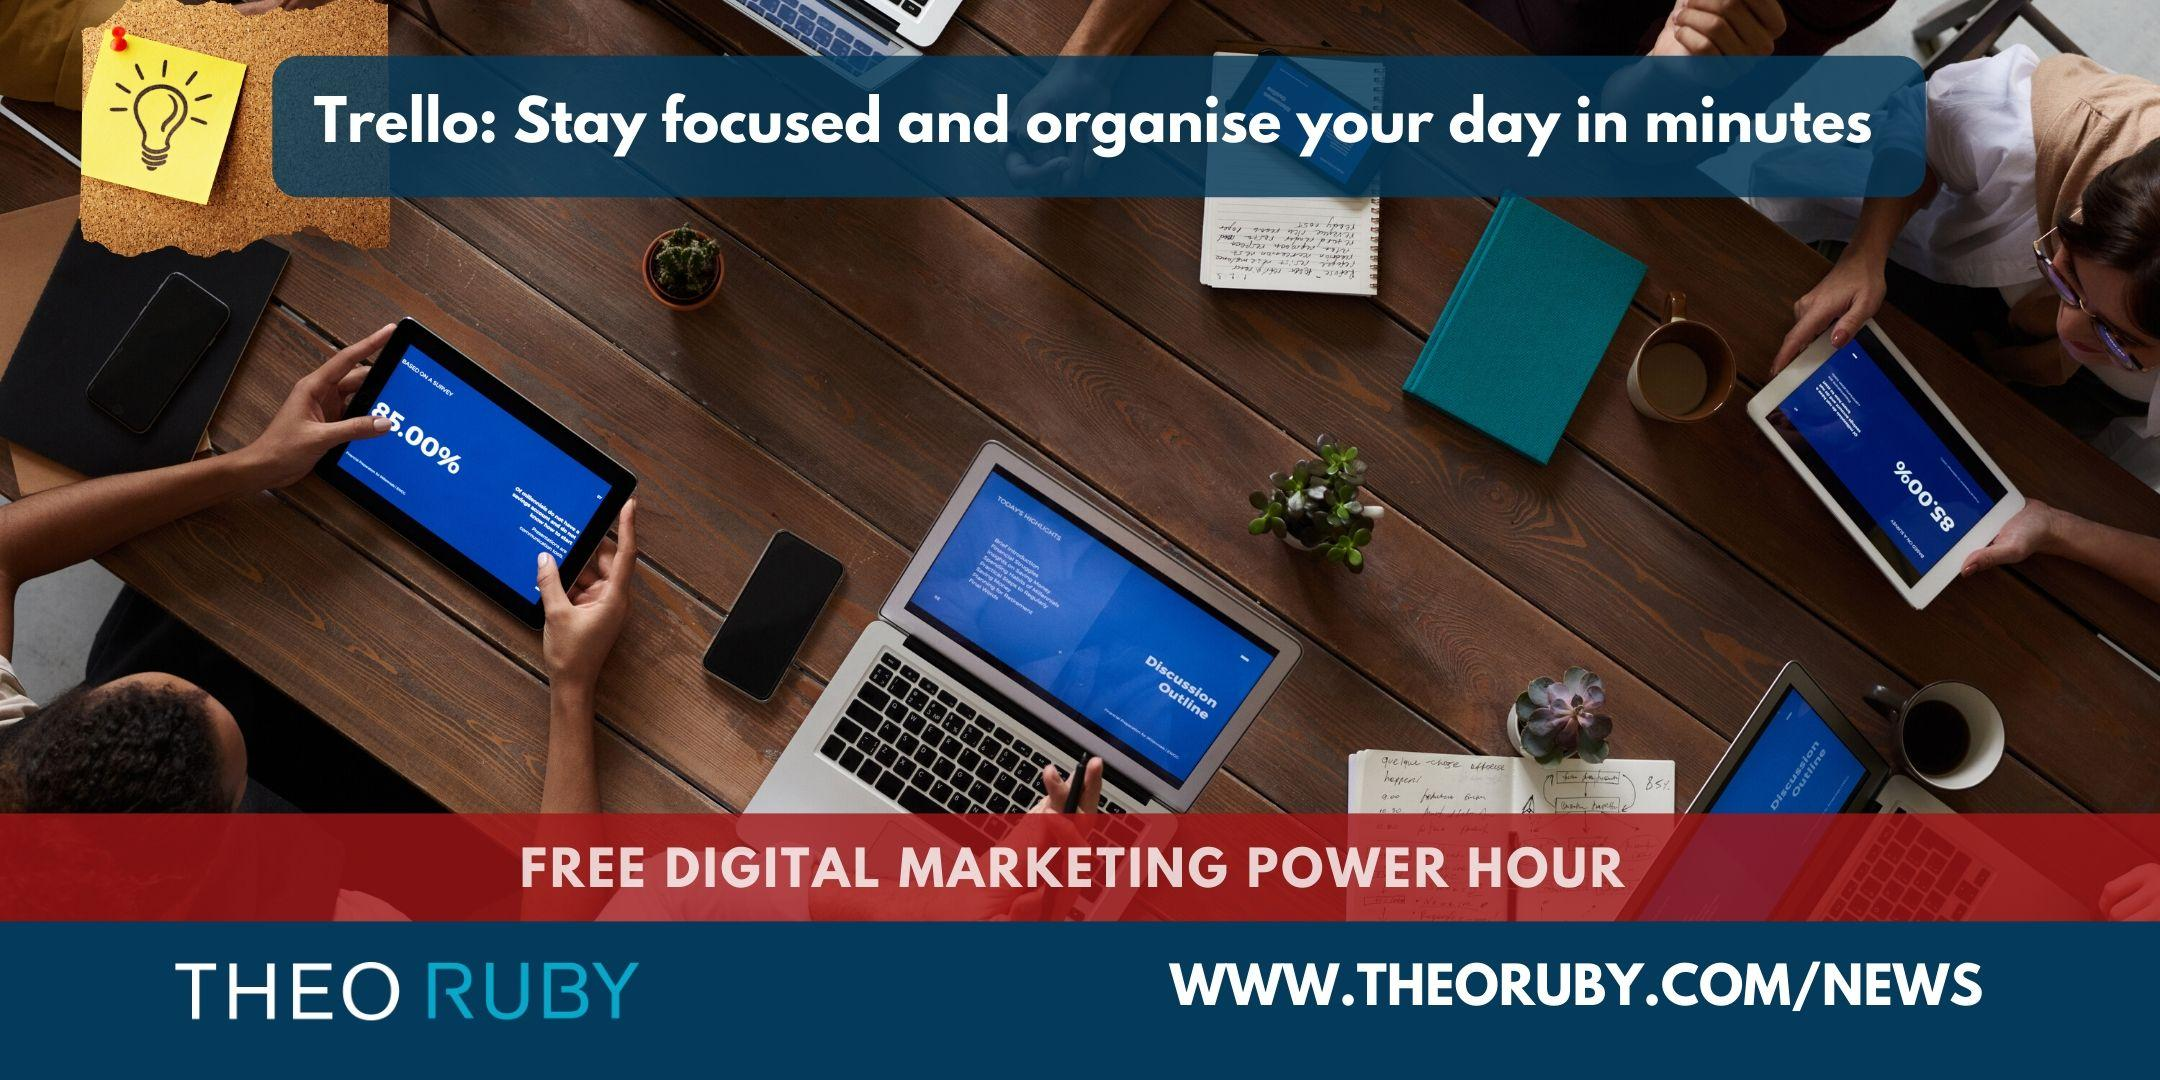 Power Hour 9 | Trello: Stay focused and organise your day in minutes 1